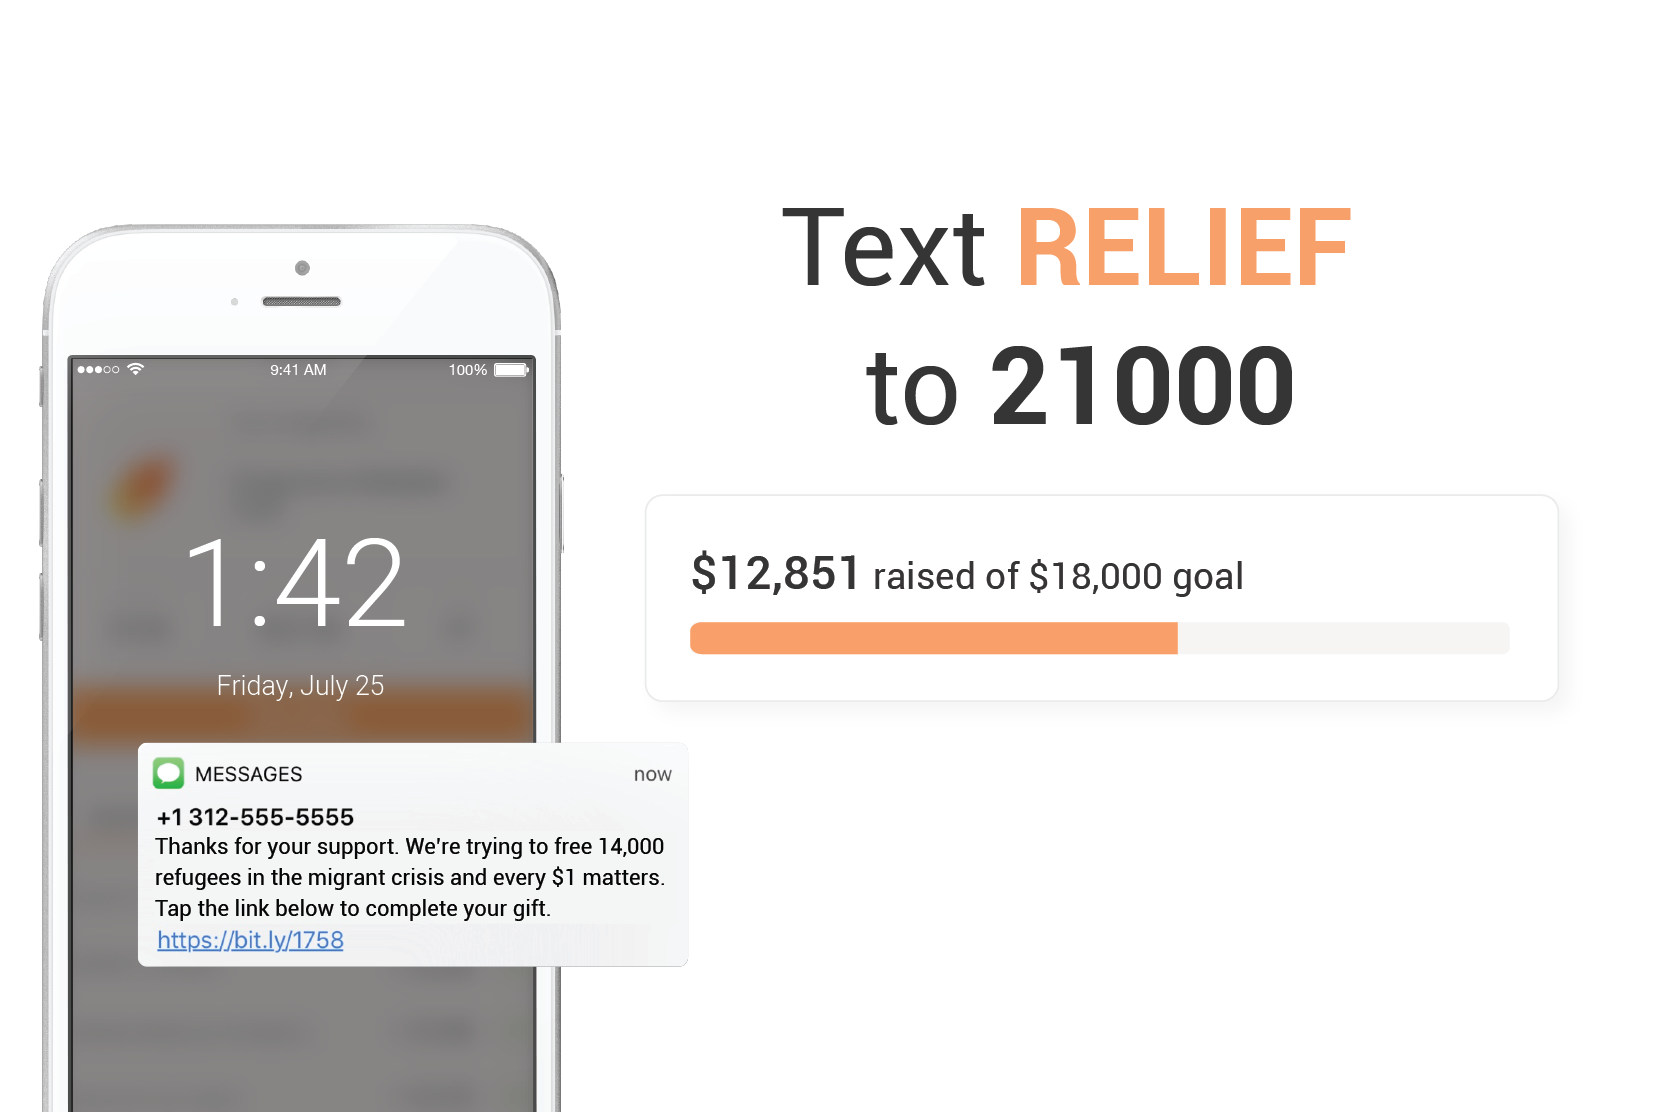 Catchy shortcodes - By texting a 4-10-character code to your designated number, supporters can send a donation on the spot, straight from their smartphone.